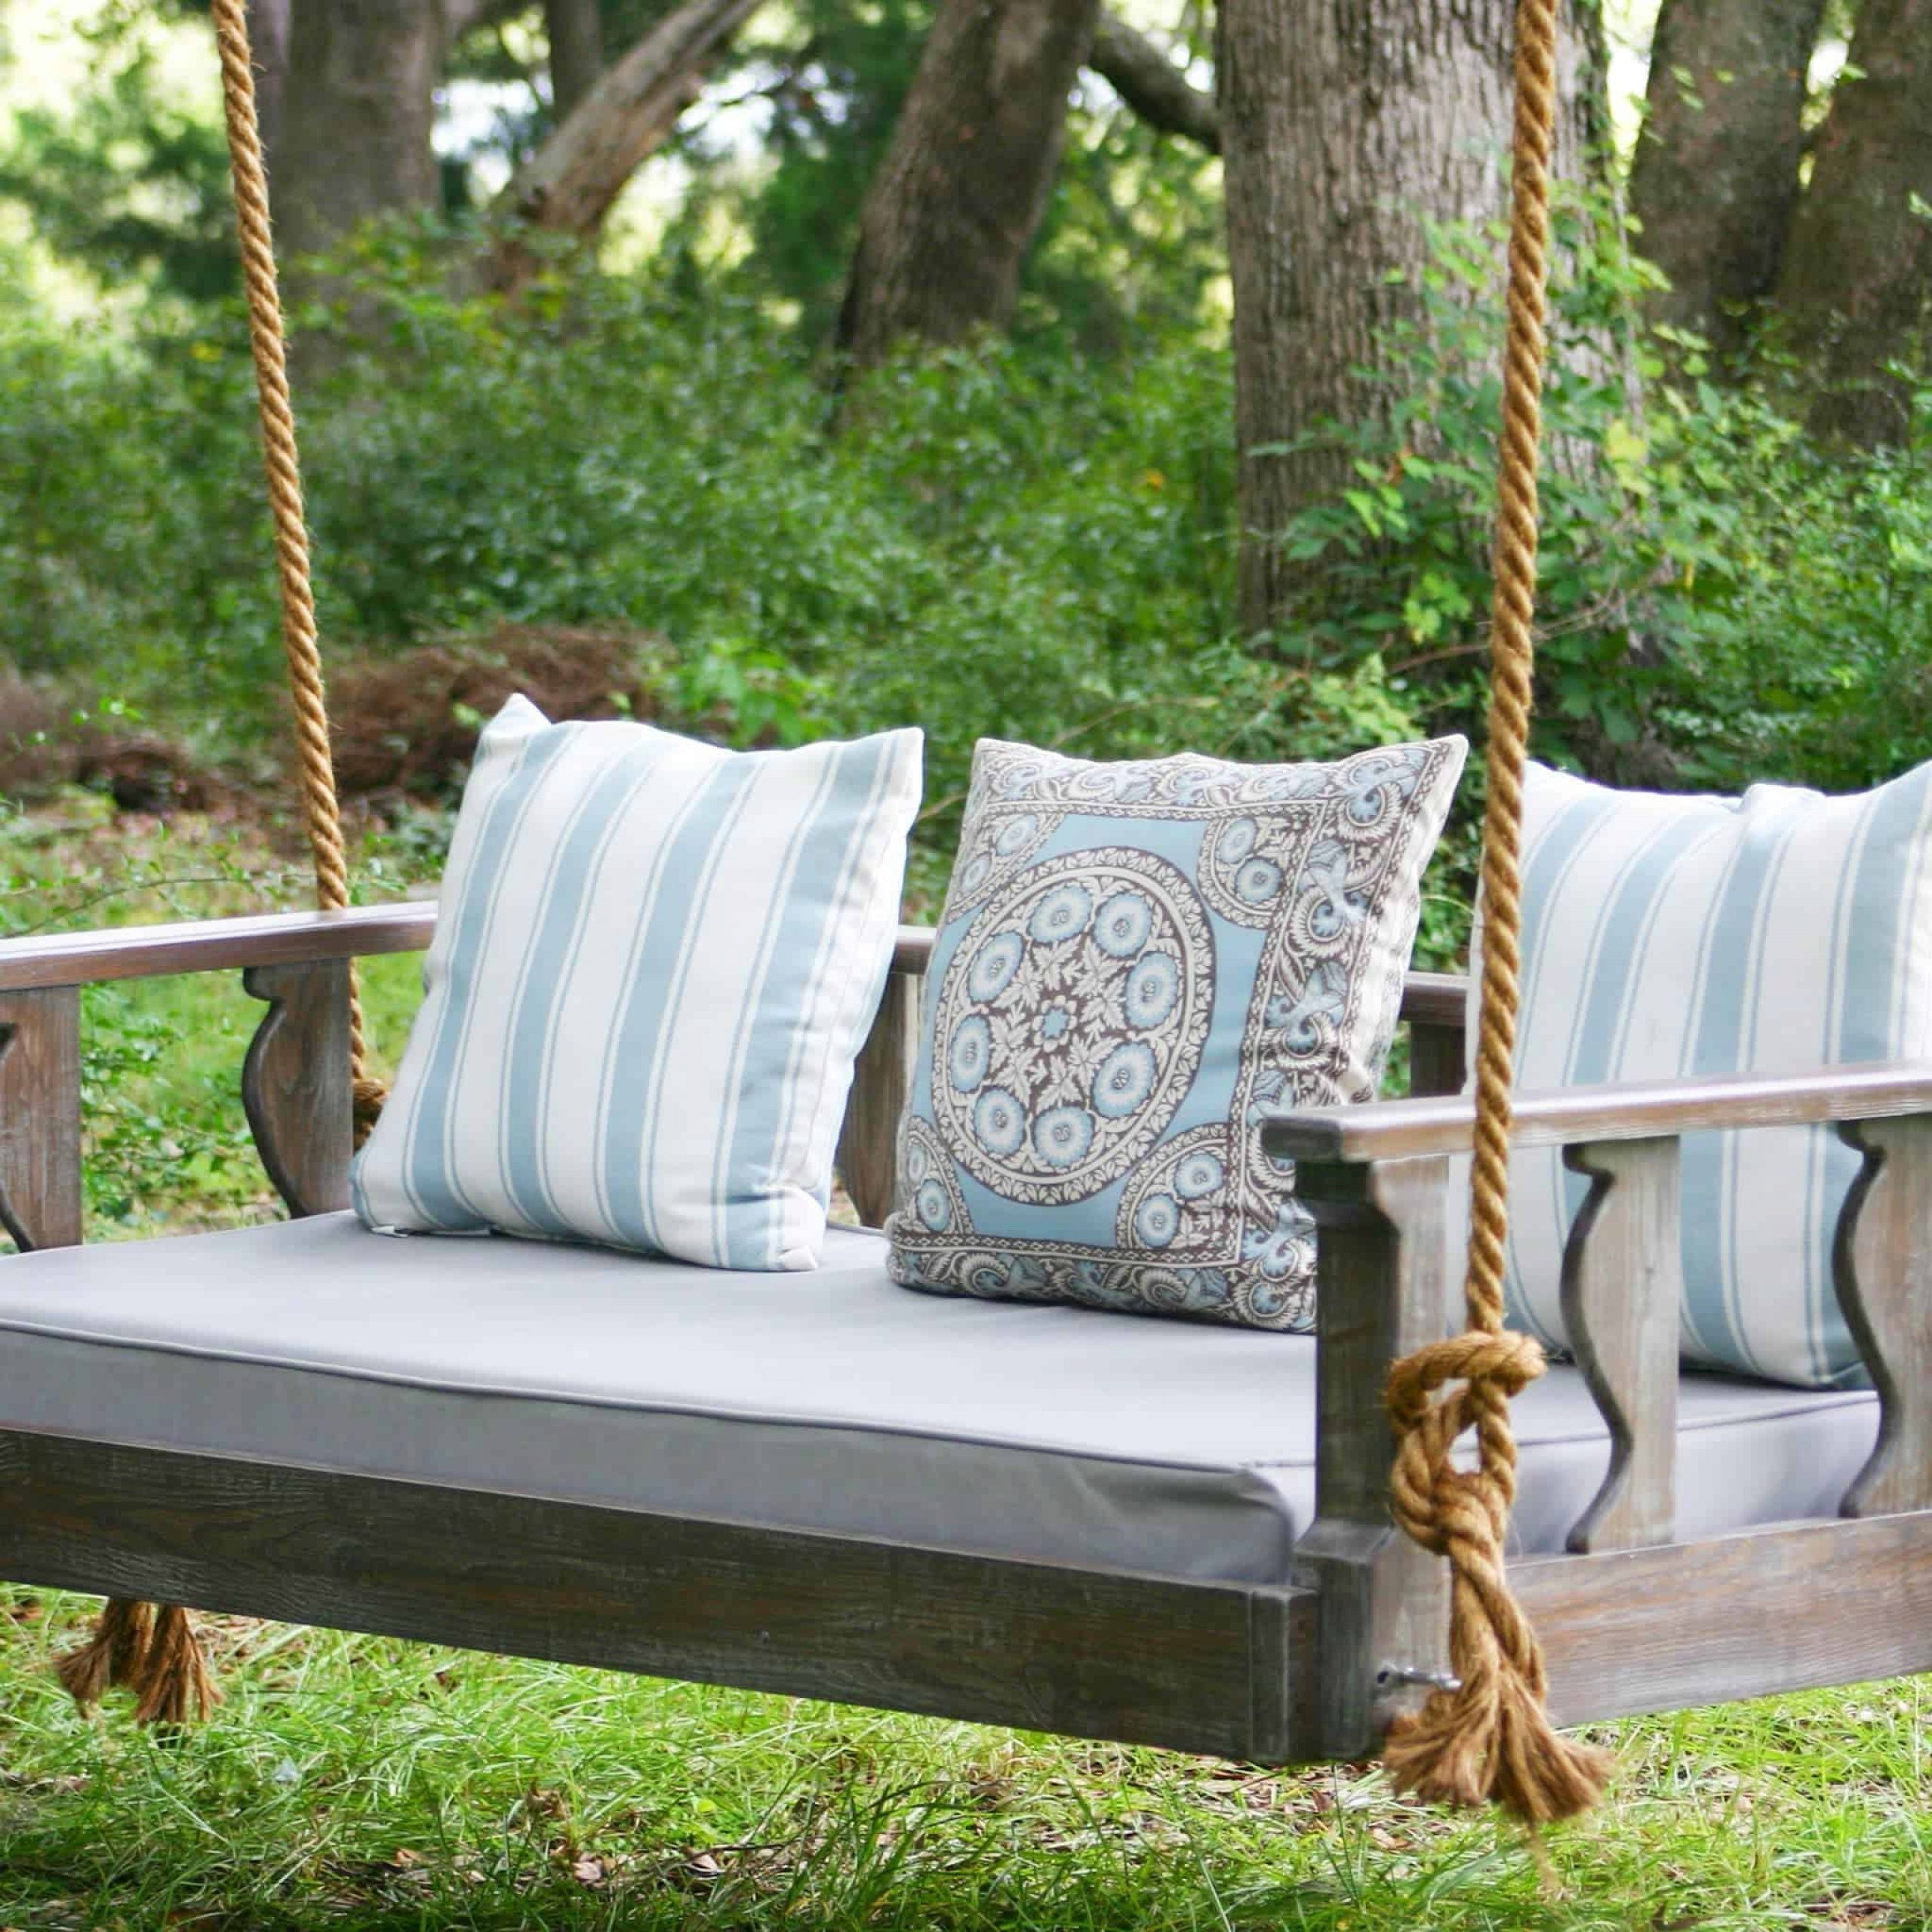 Popular Patio Hanging Porch Swings With Bed Swings And Porch Swings, Handmadevintage Porch Swings (View 17 of 30)